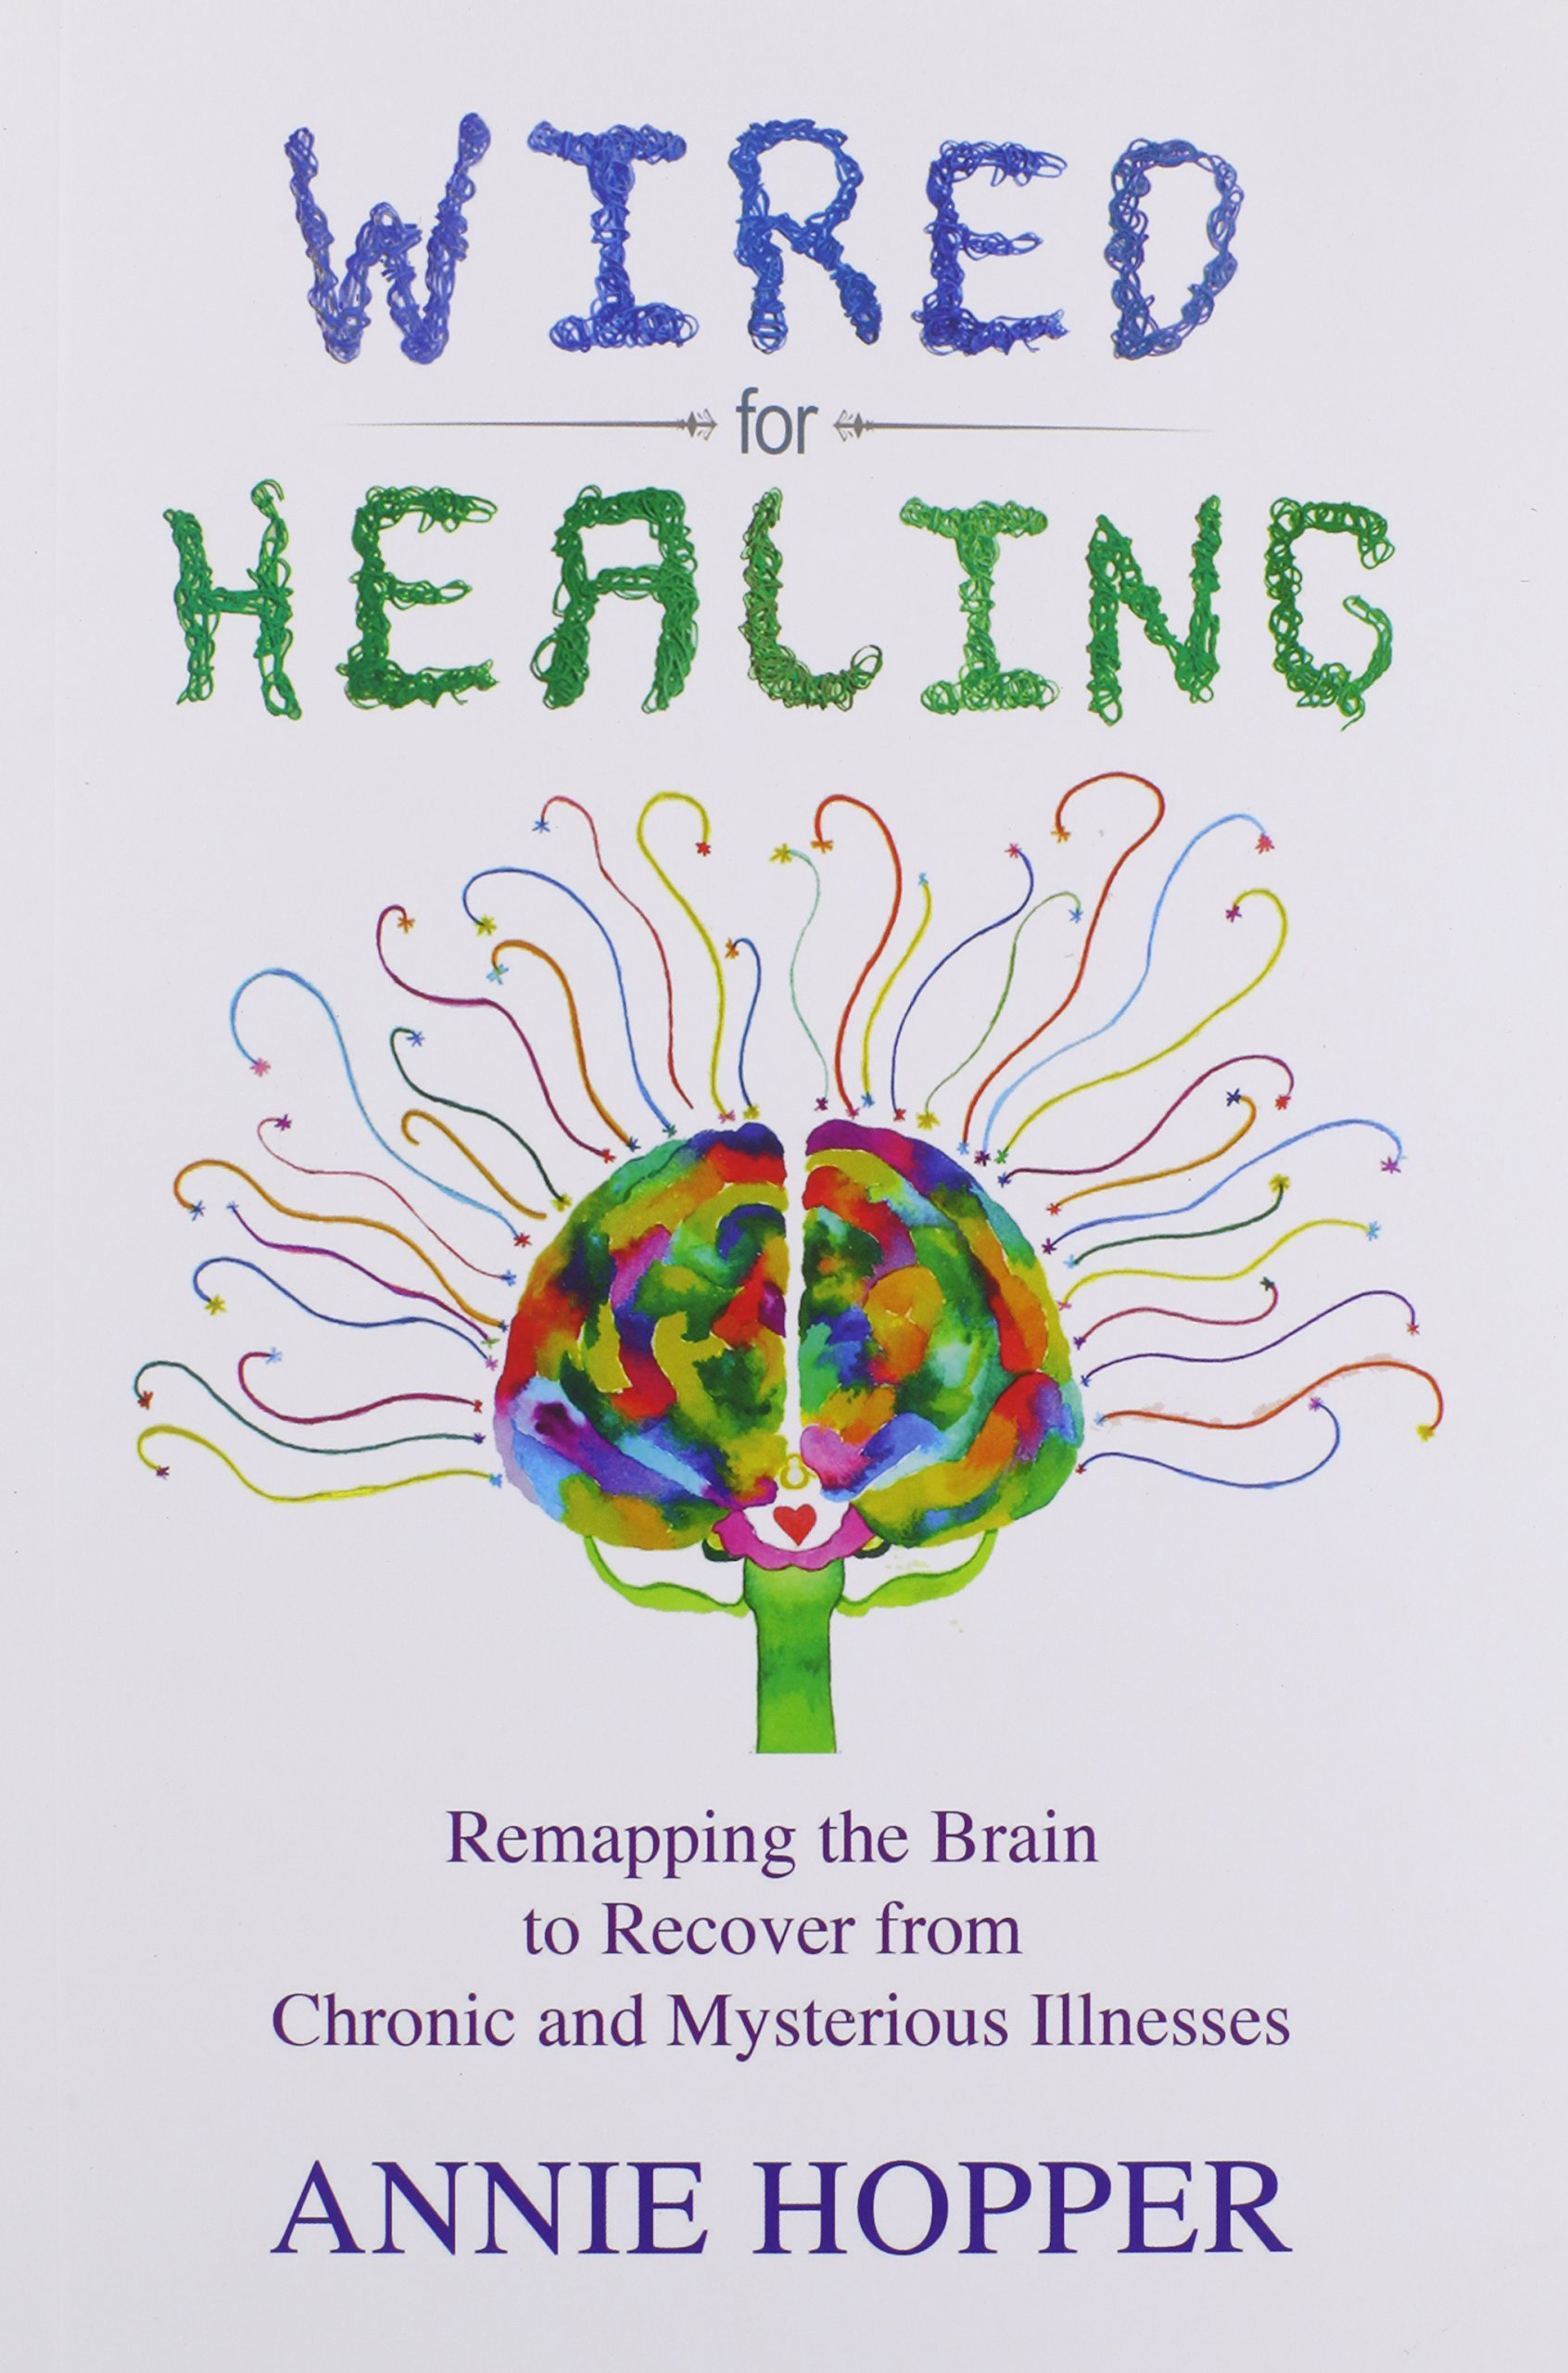 Wired For Healing  Remapping The Brain To Recover From Chronic And  Mysterious Illnesses: Annie Hopper: 9780993890109: Amazon: Books